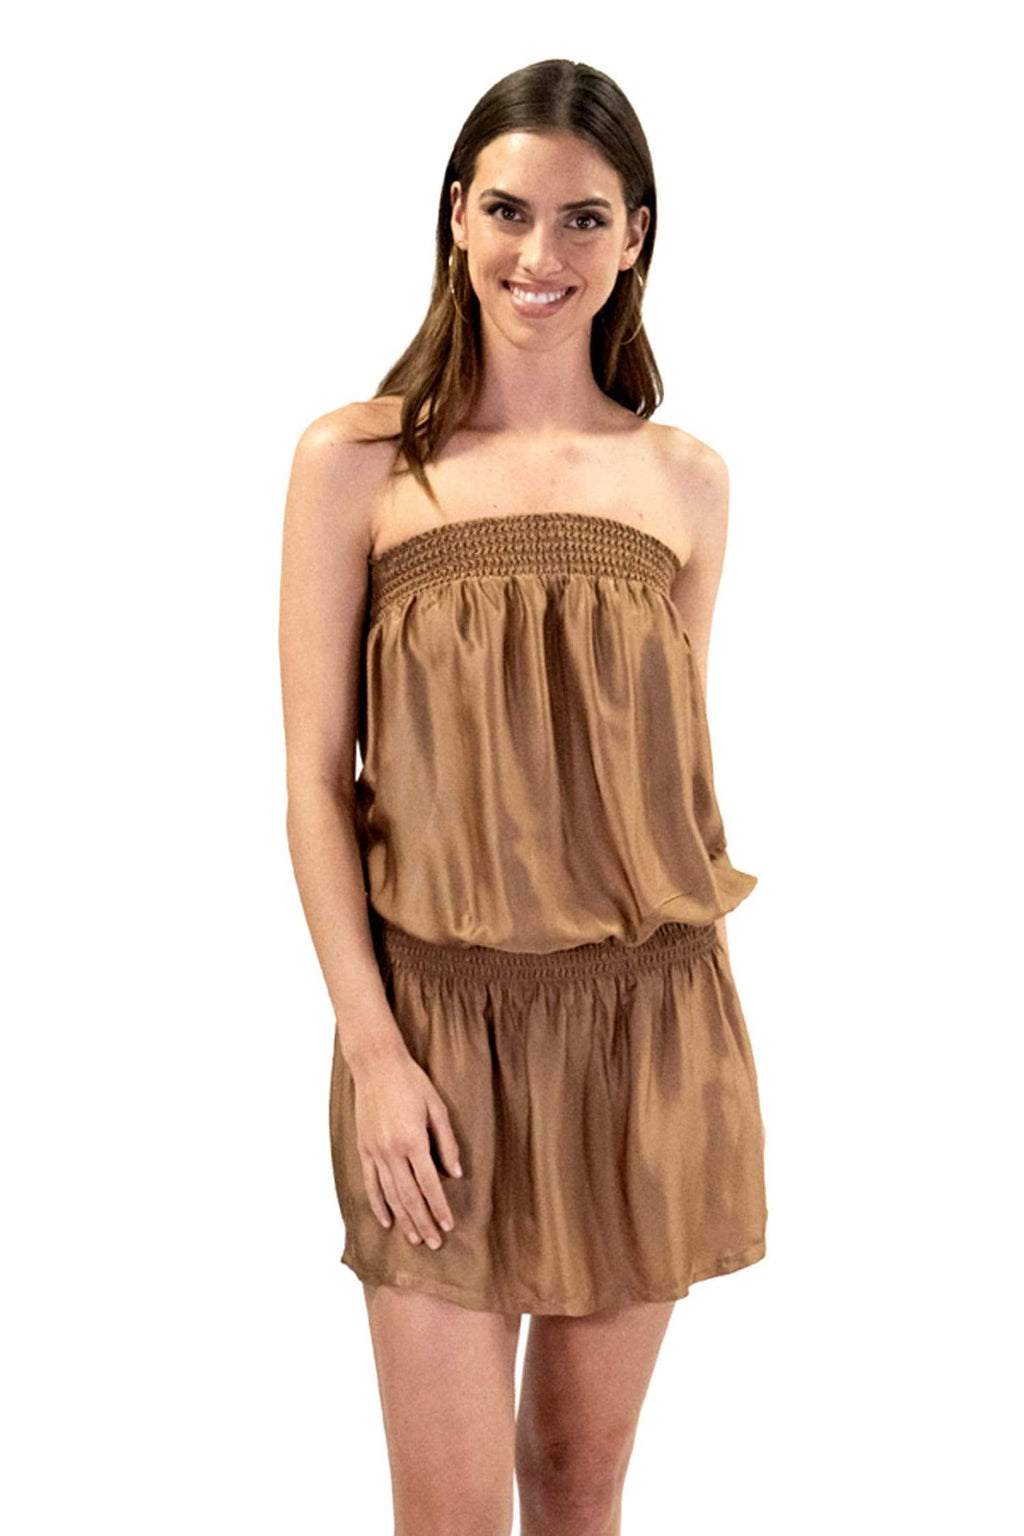 shop-sofia KIM BRONZE TUBE DRESS Sofia Collections Italian Silk Linen Satin